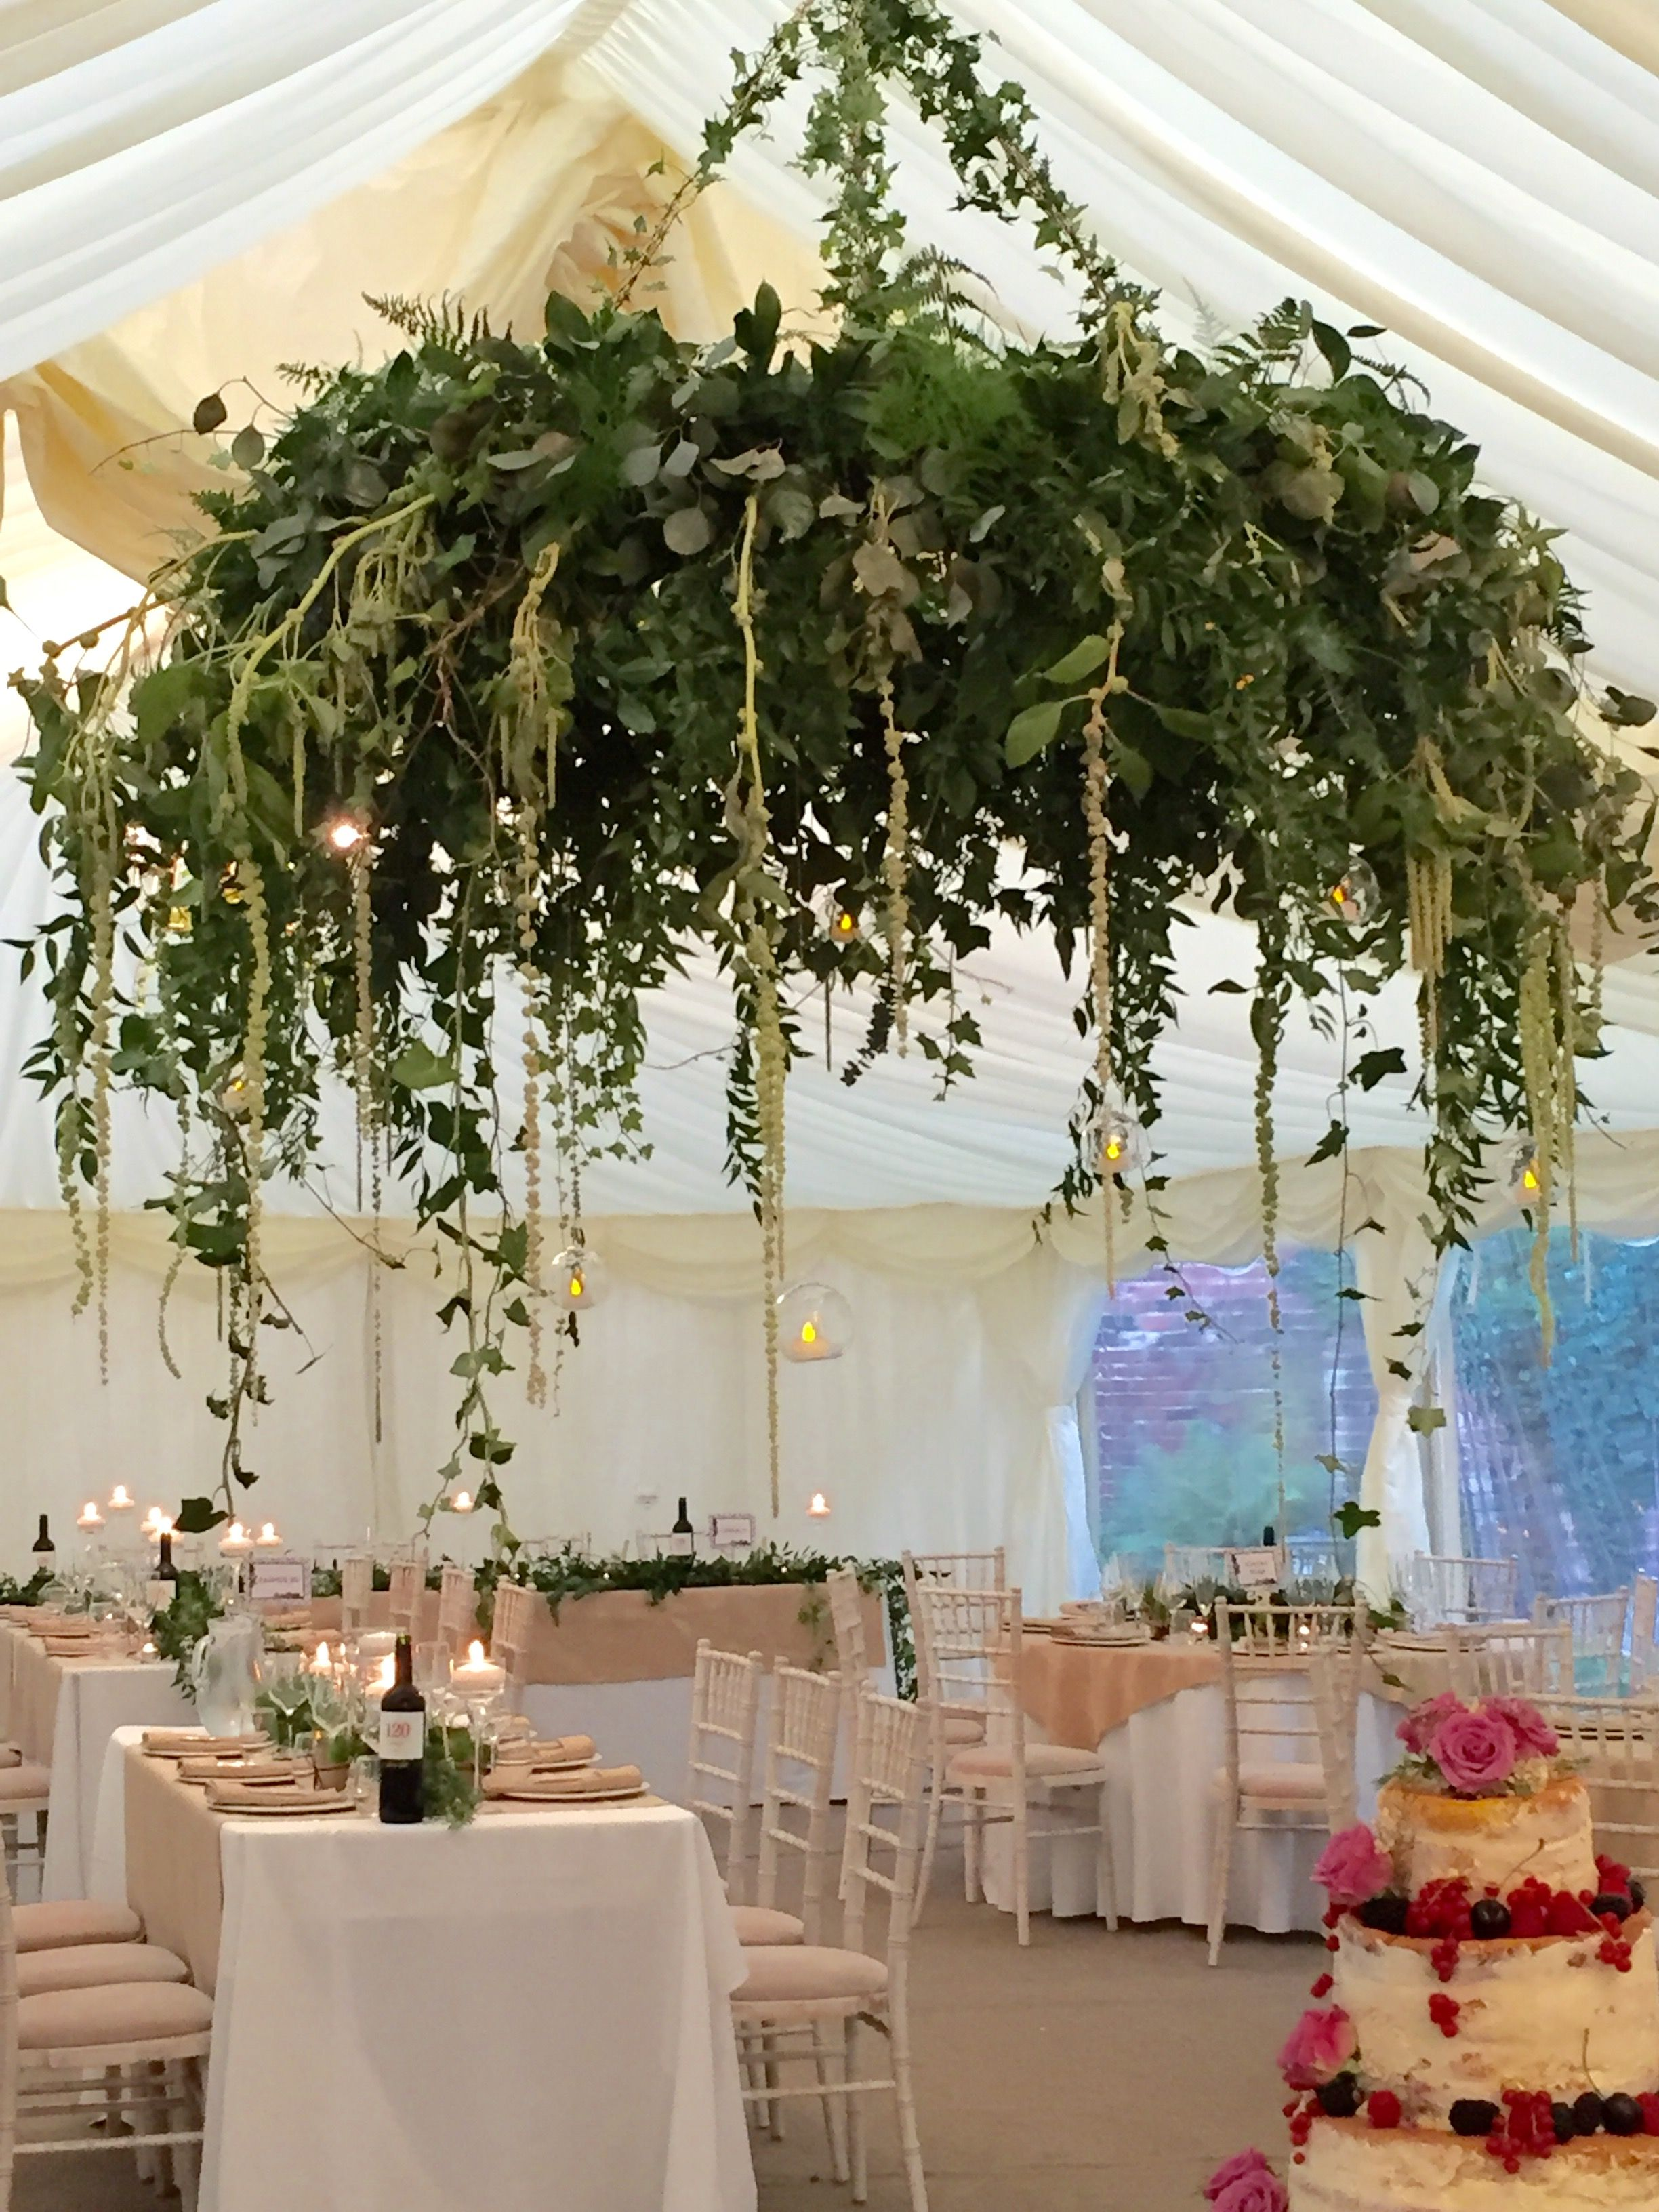 Bespoke Wedding Event Venue Styling Floral Design By West Midlands Debonair Staffordshire Warwickshire WorcestershireShropshire UK